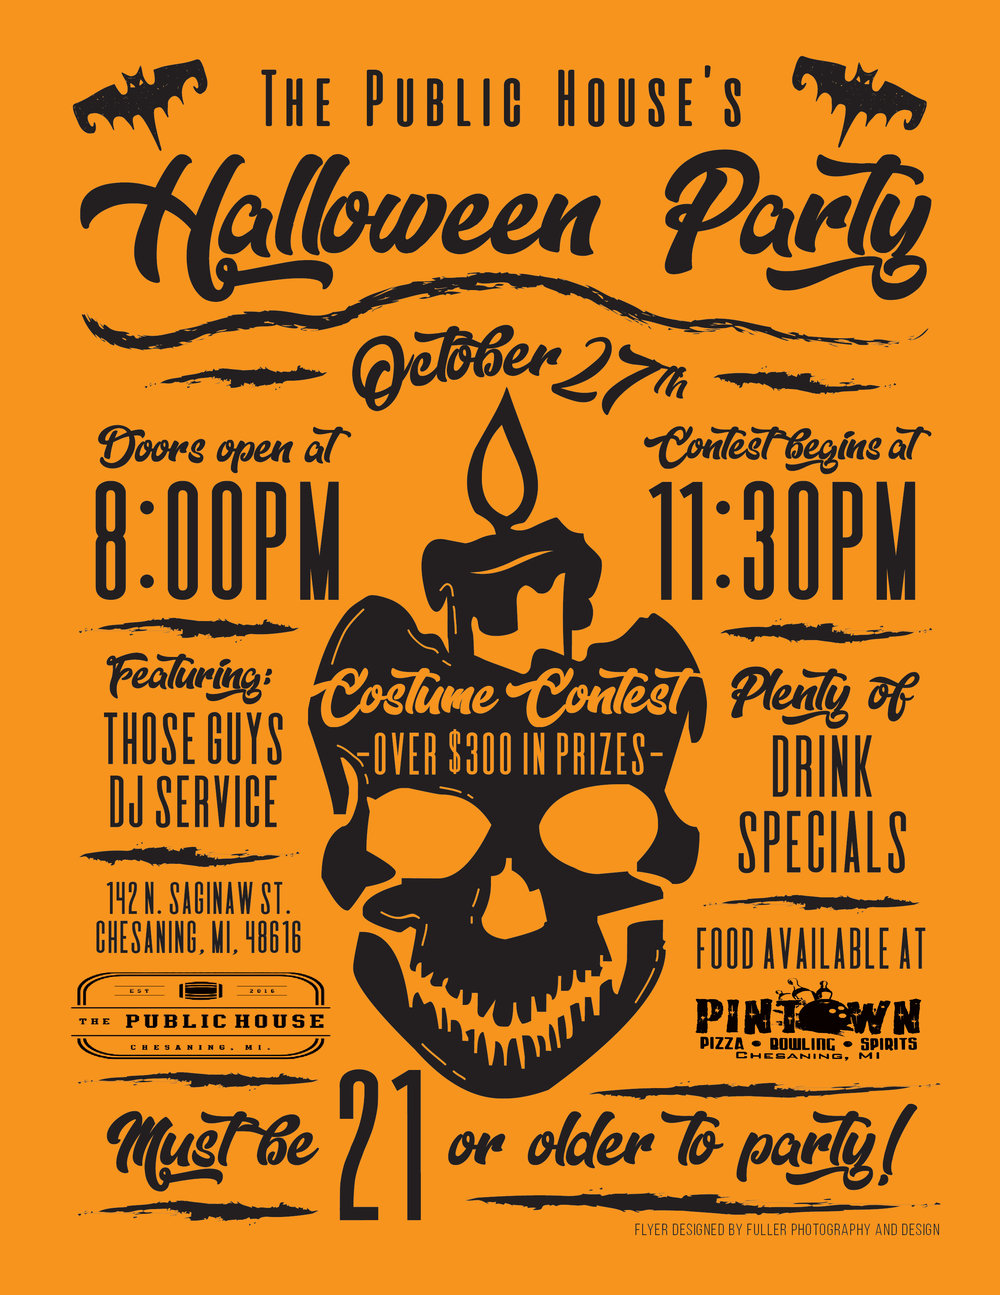 Halloween Party Flyer_2019.jpg